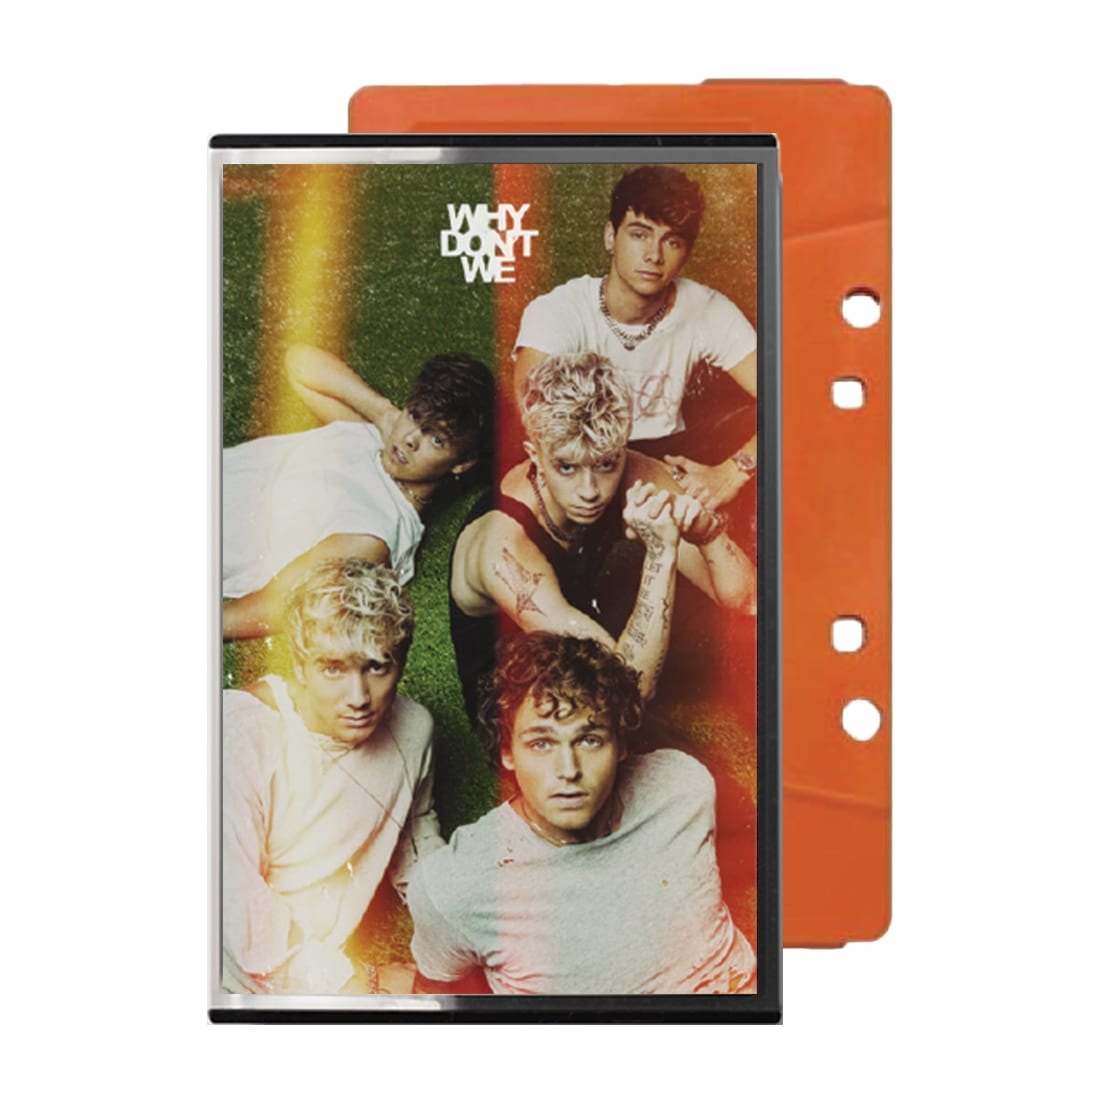 The Good Times And The Bad Ones Cassette (Orange) product image (1)